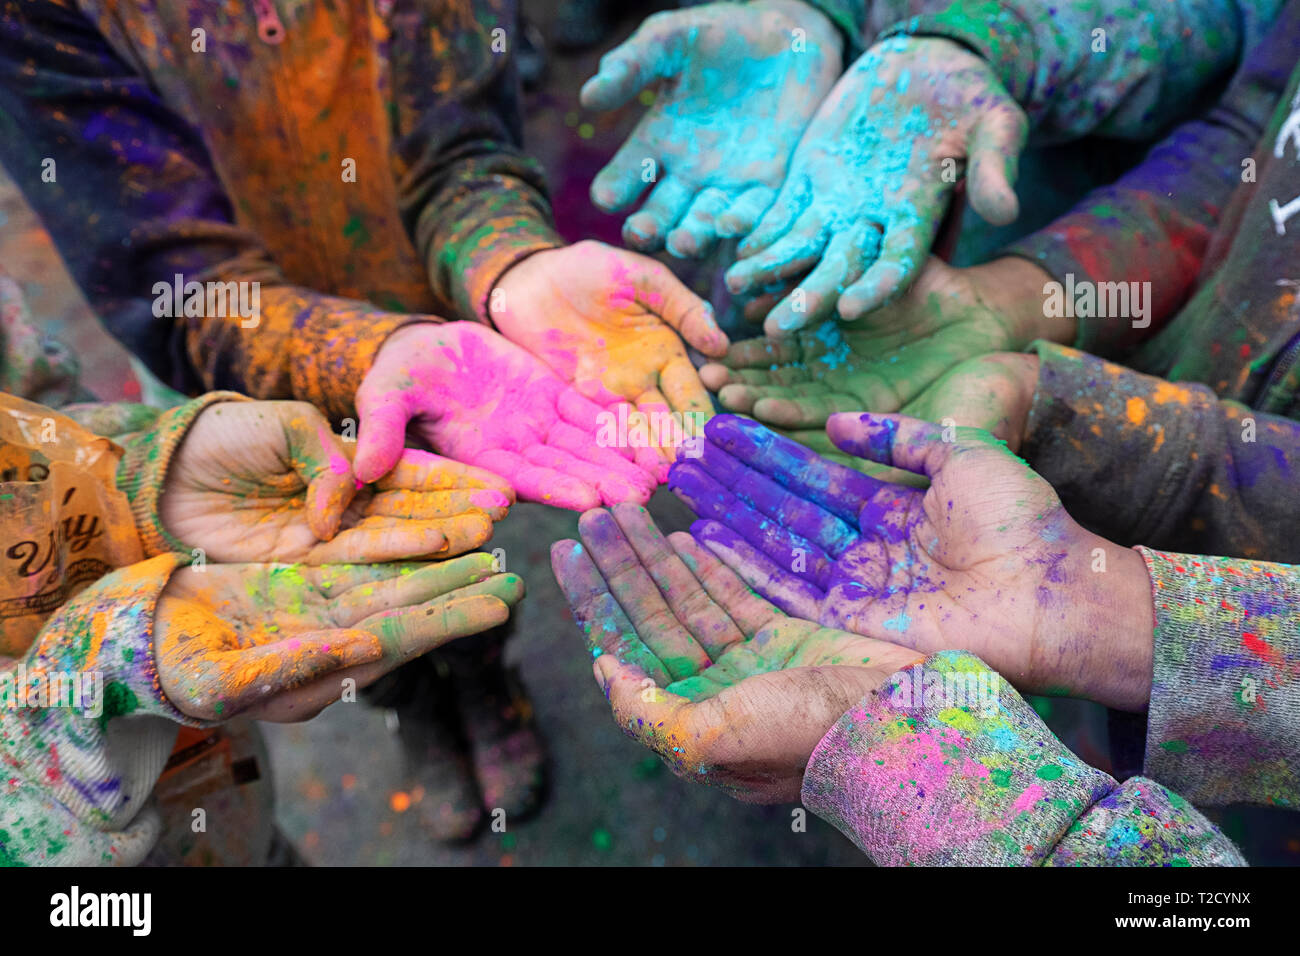 Children's hands at the Holi Parade on Liberty Ave in Richmond Hill, Queens, New York where it's customary to throw & smear colored powder. - Stock Image